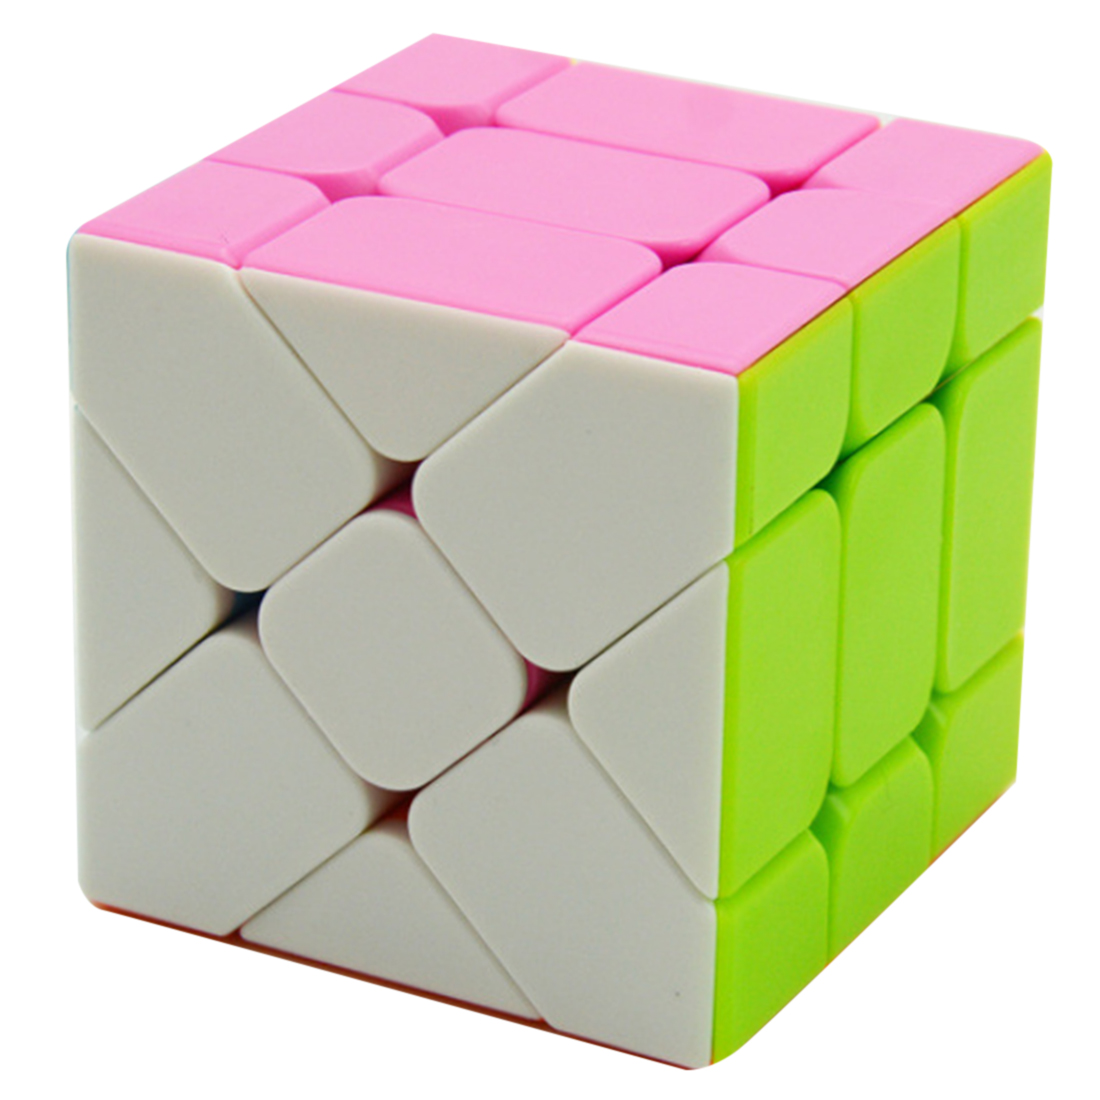 Fangge Fisher Cube 3X3X3 Magic Cube Irregular Cube Puzzle Toys for Beginner - Colorful цена